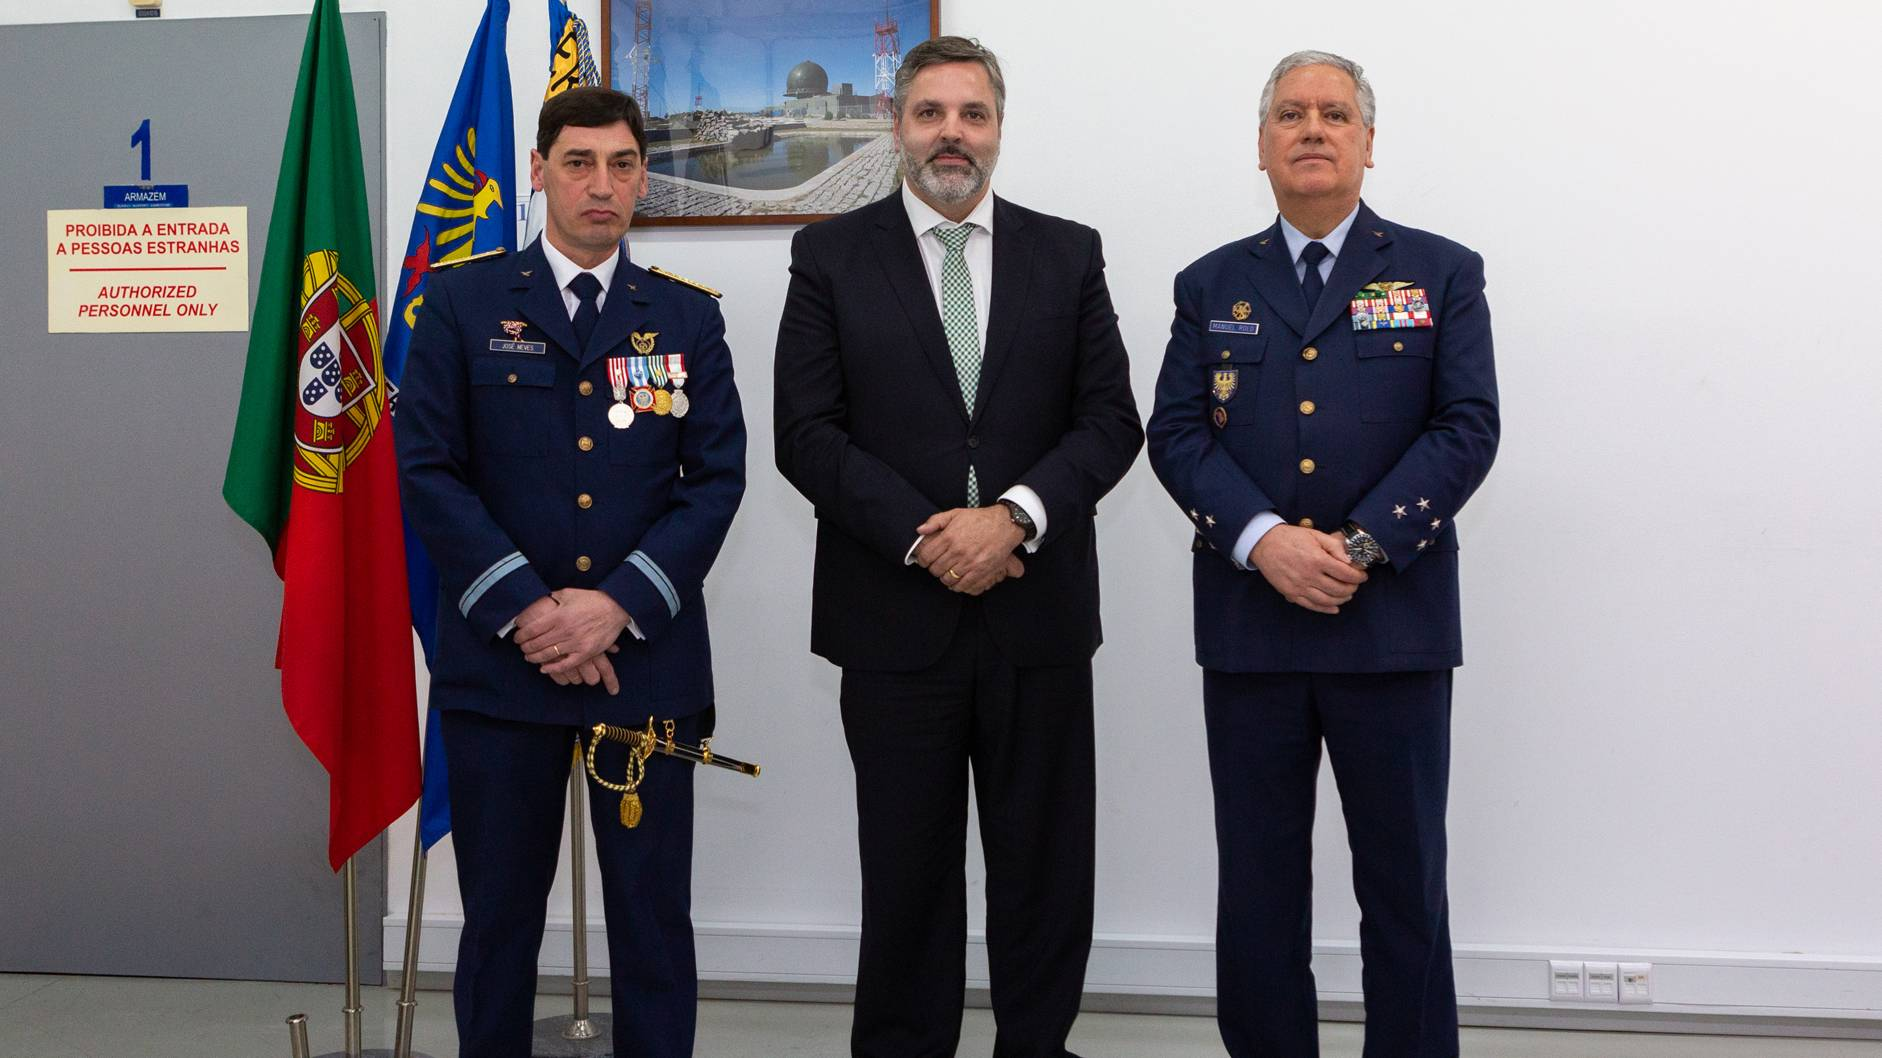 Major José Neves assume Comando da Estação de Radar N.º1